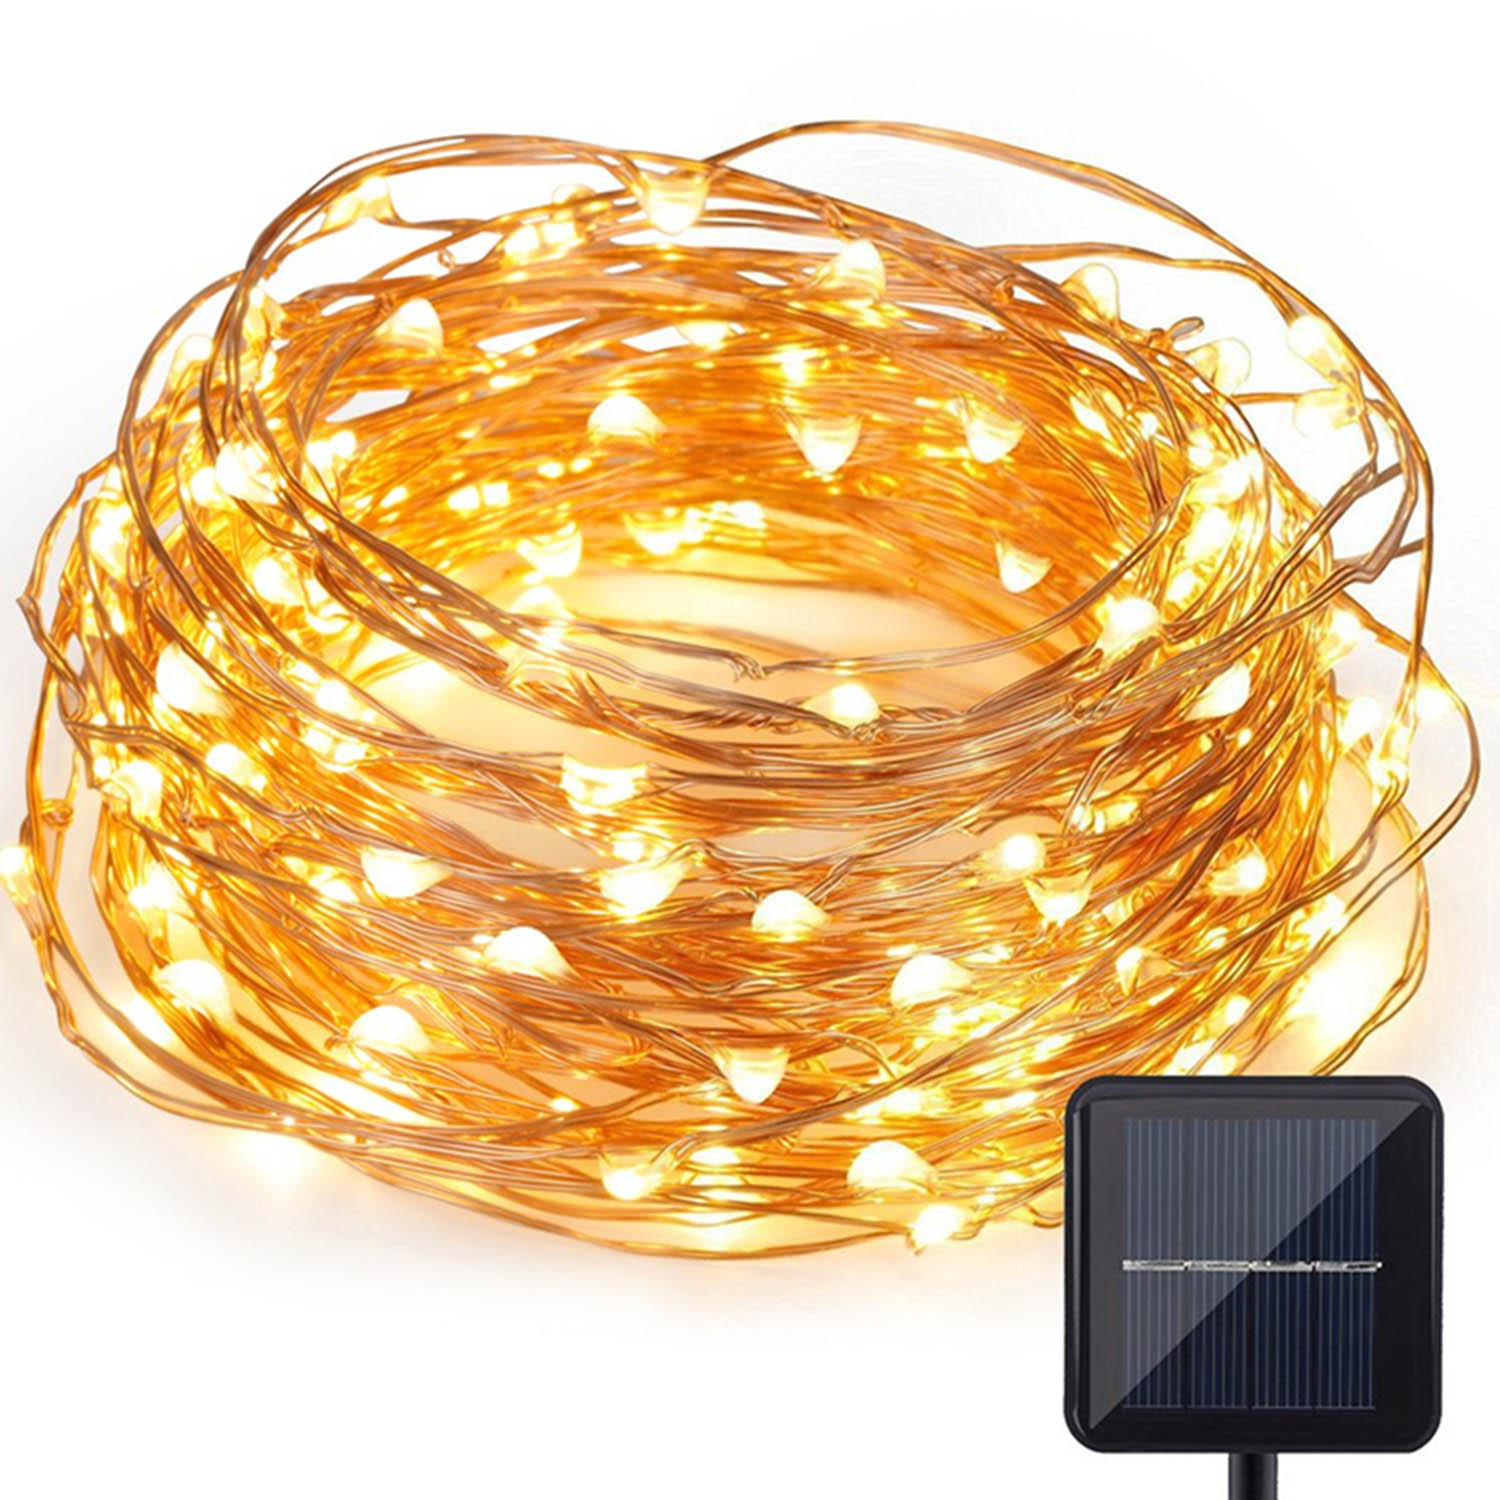 CoreLife Outdoor Solar Fairy Lights 66 ft. 200 Warm White LED String Light Copper Wire Weatherproof Waterproof Decorative Solar Powered Starry Fairy Lights